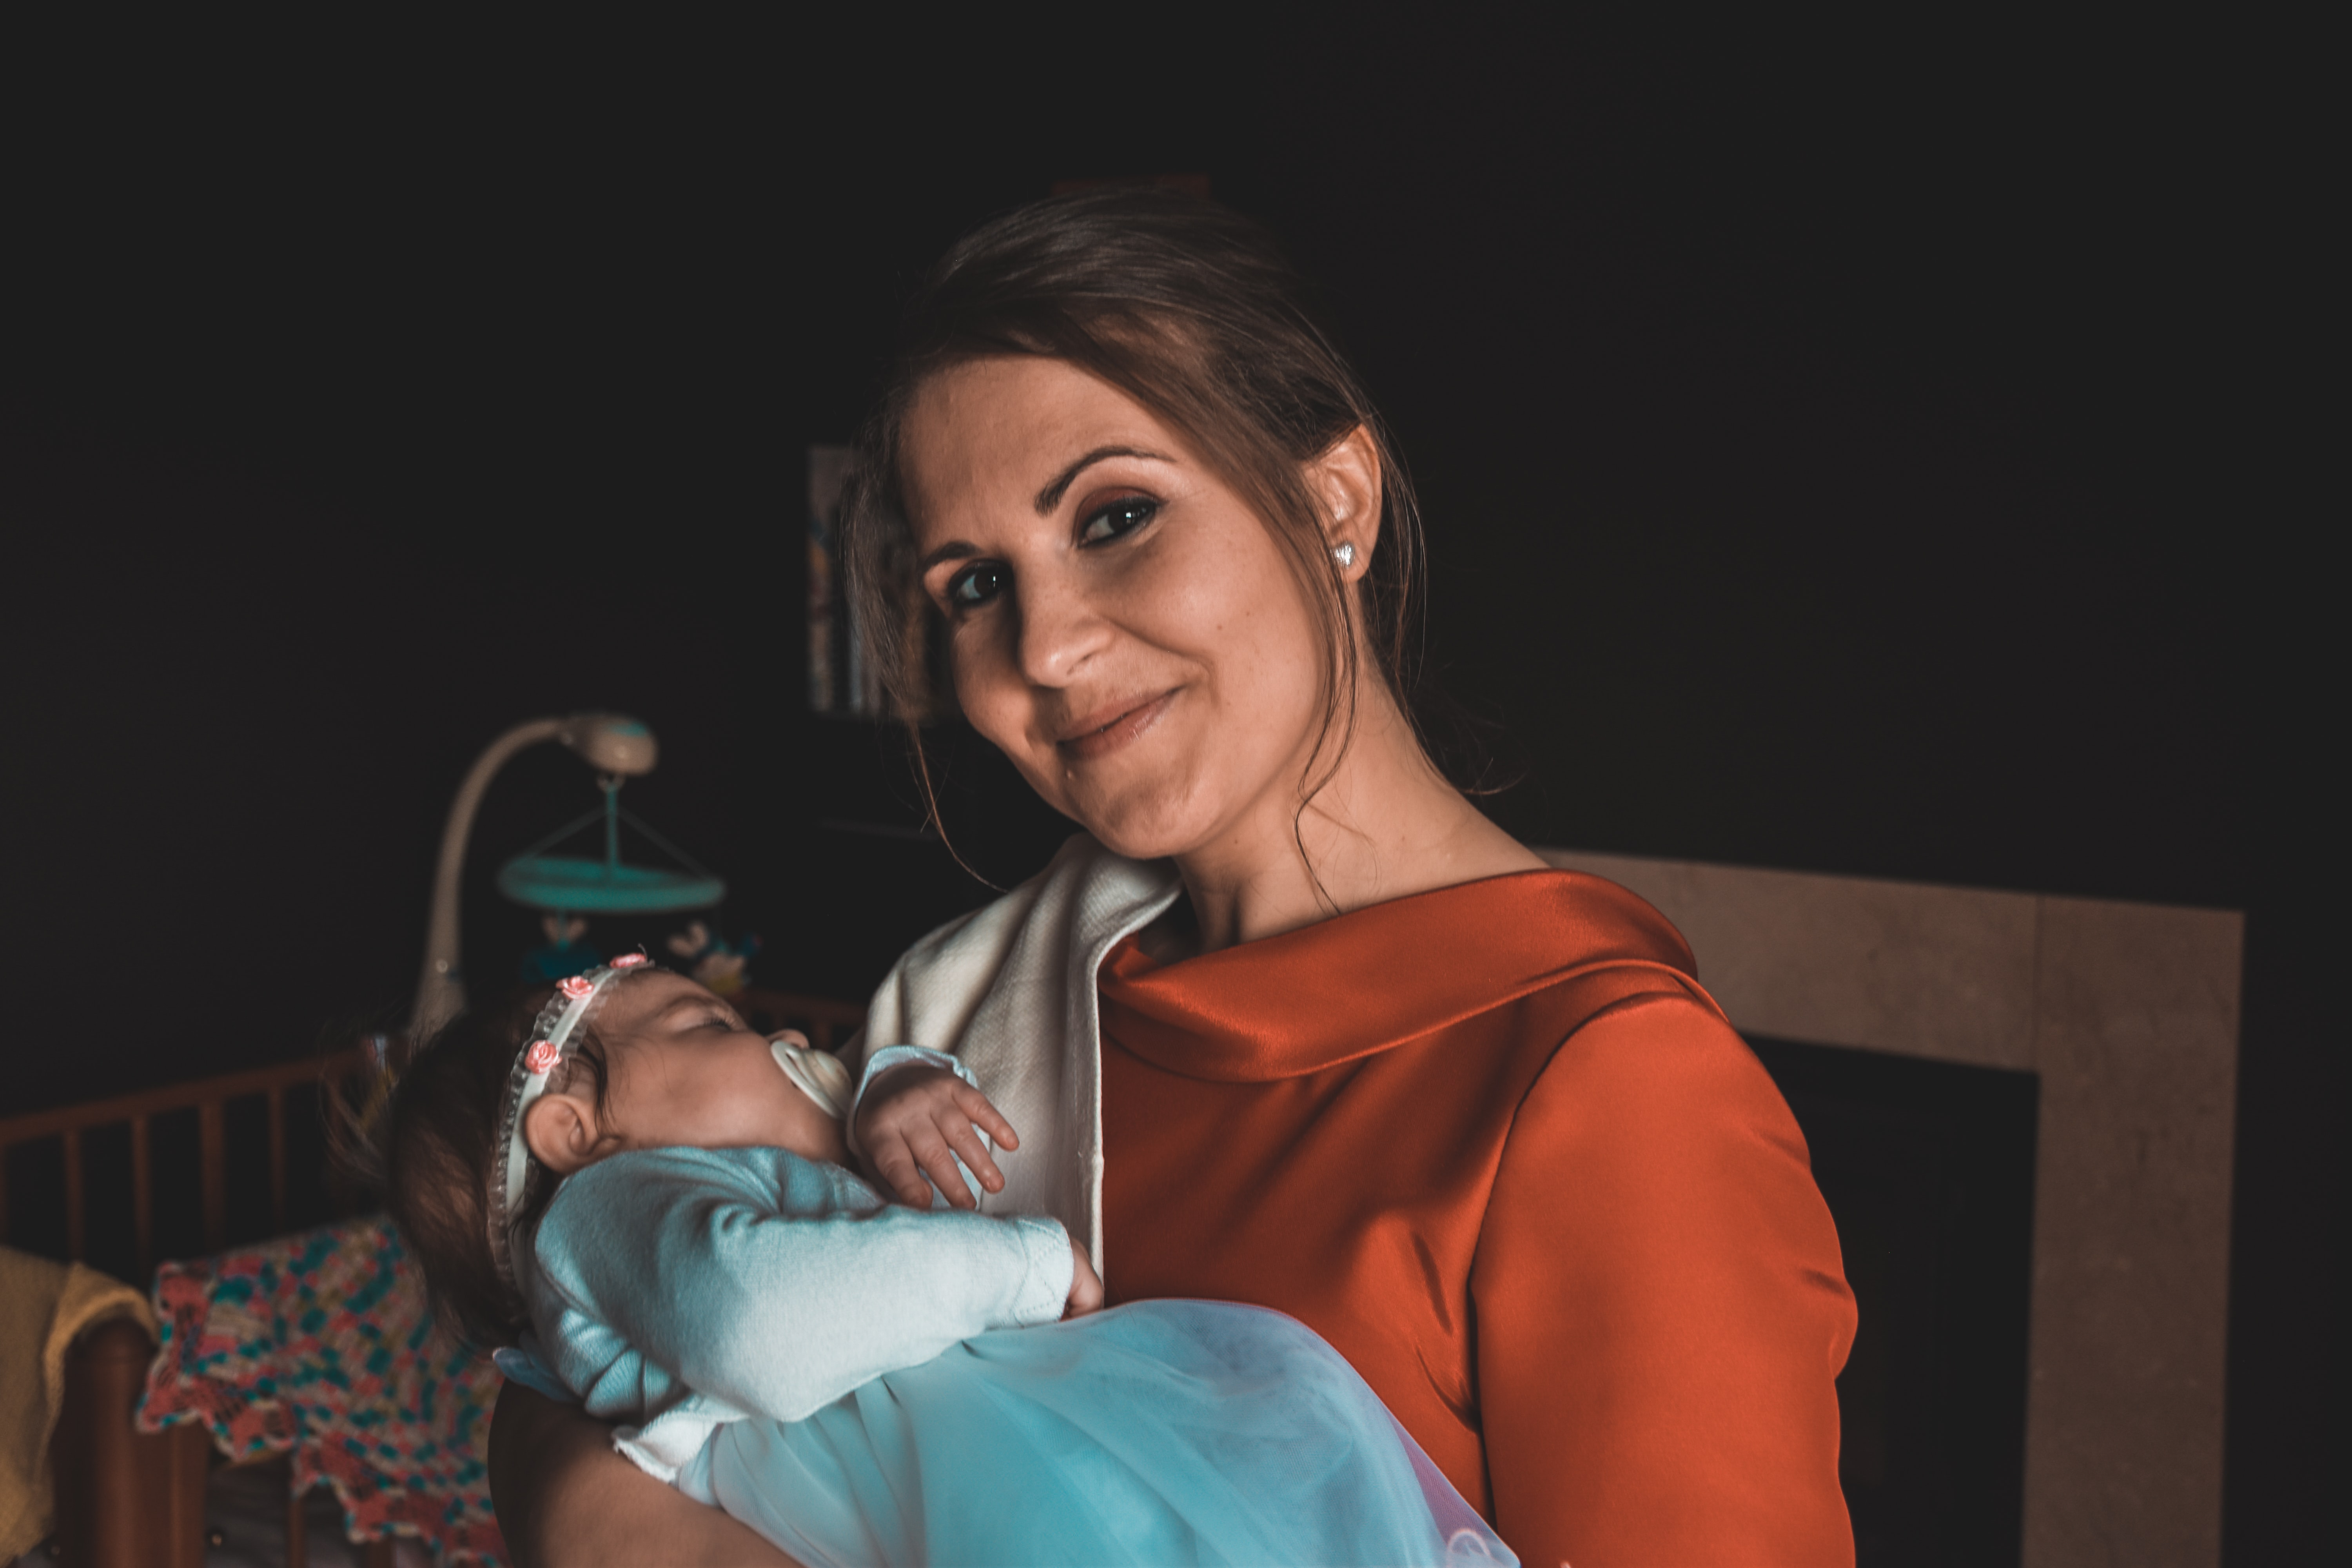 smiling woman carrying sleeping baby